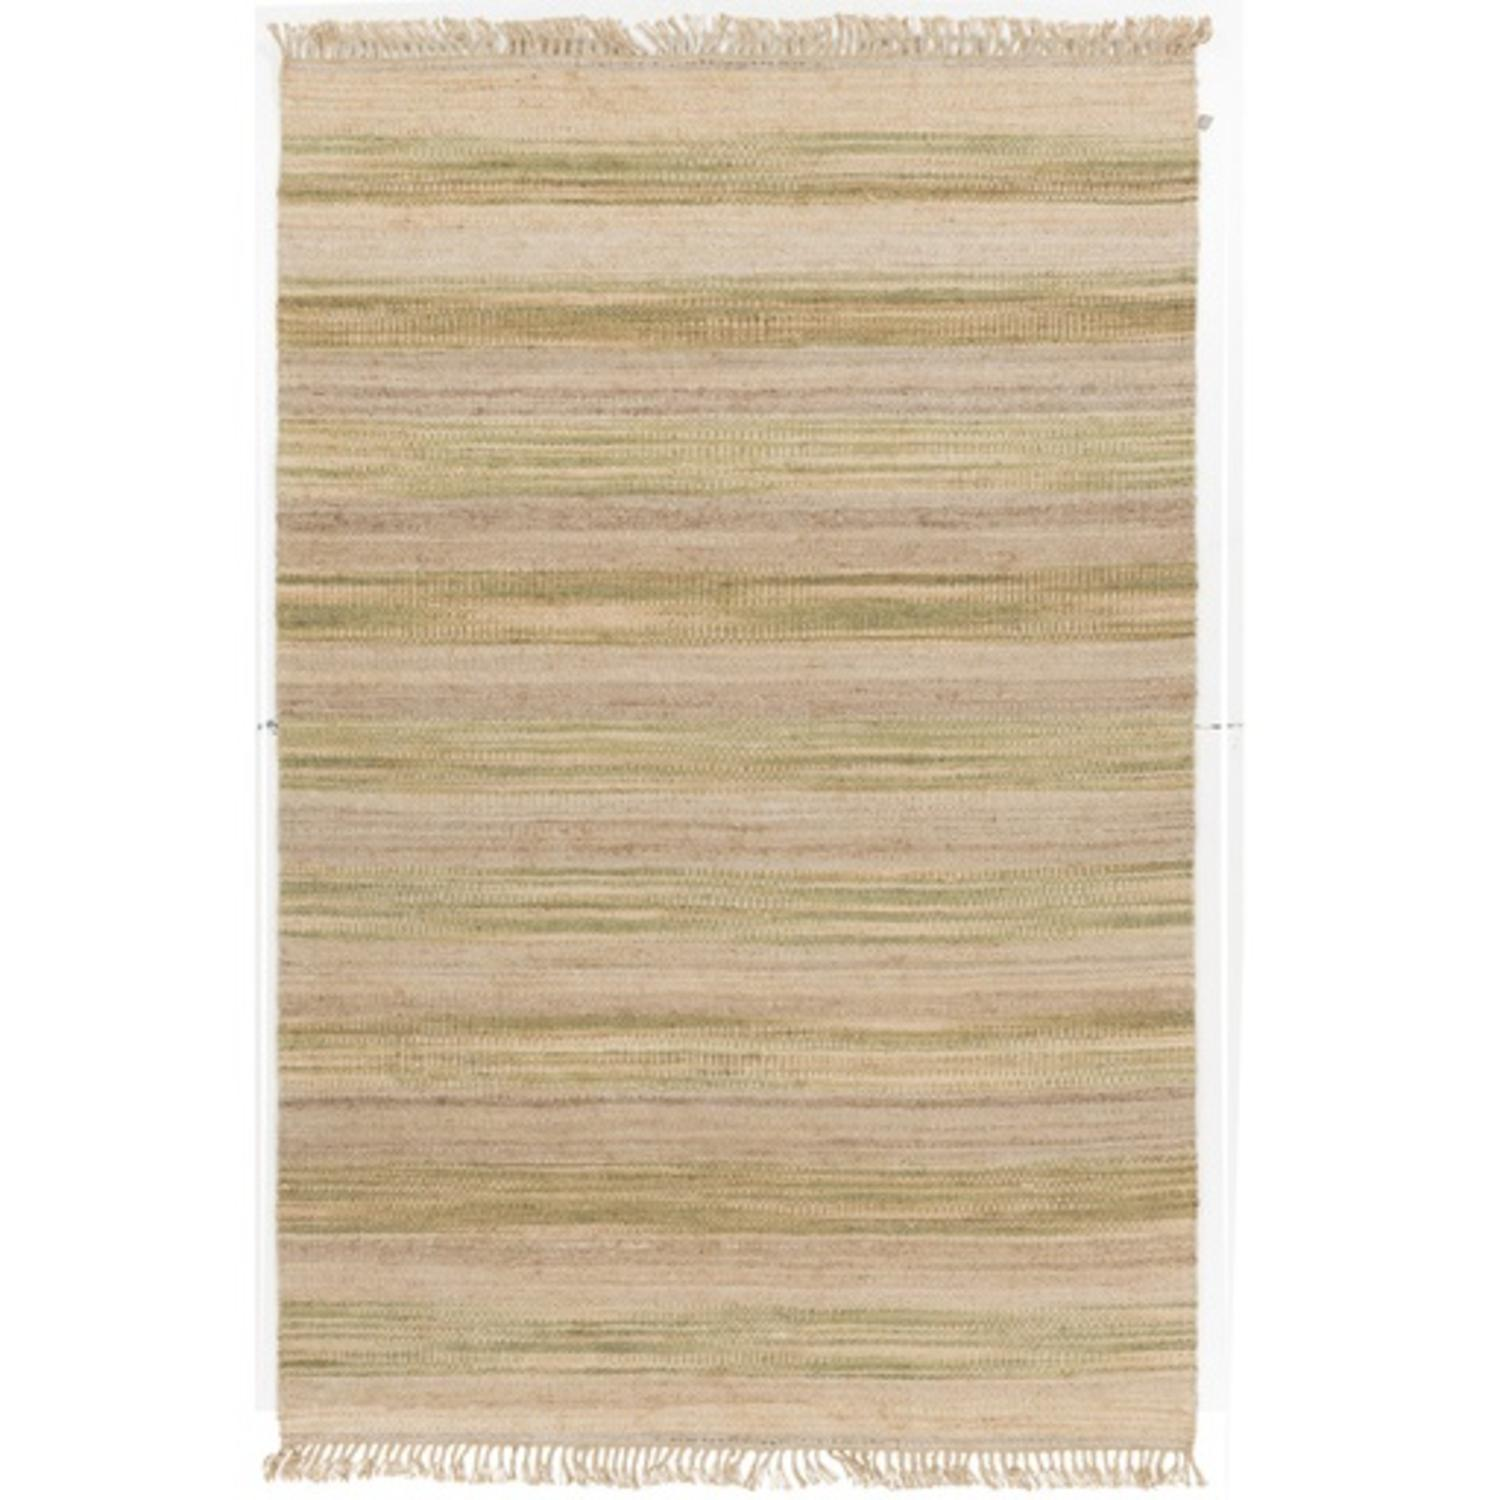 5' x 8'  Picket Fences Almond Beige and Olive Green Hand ...